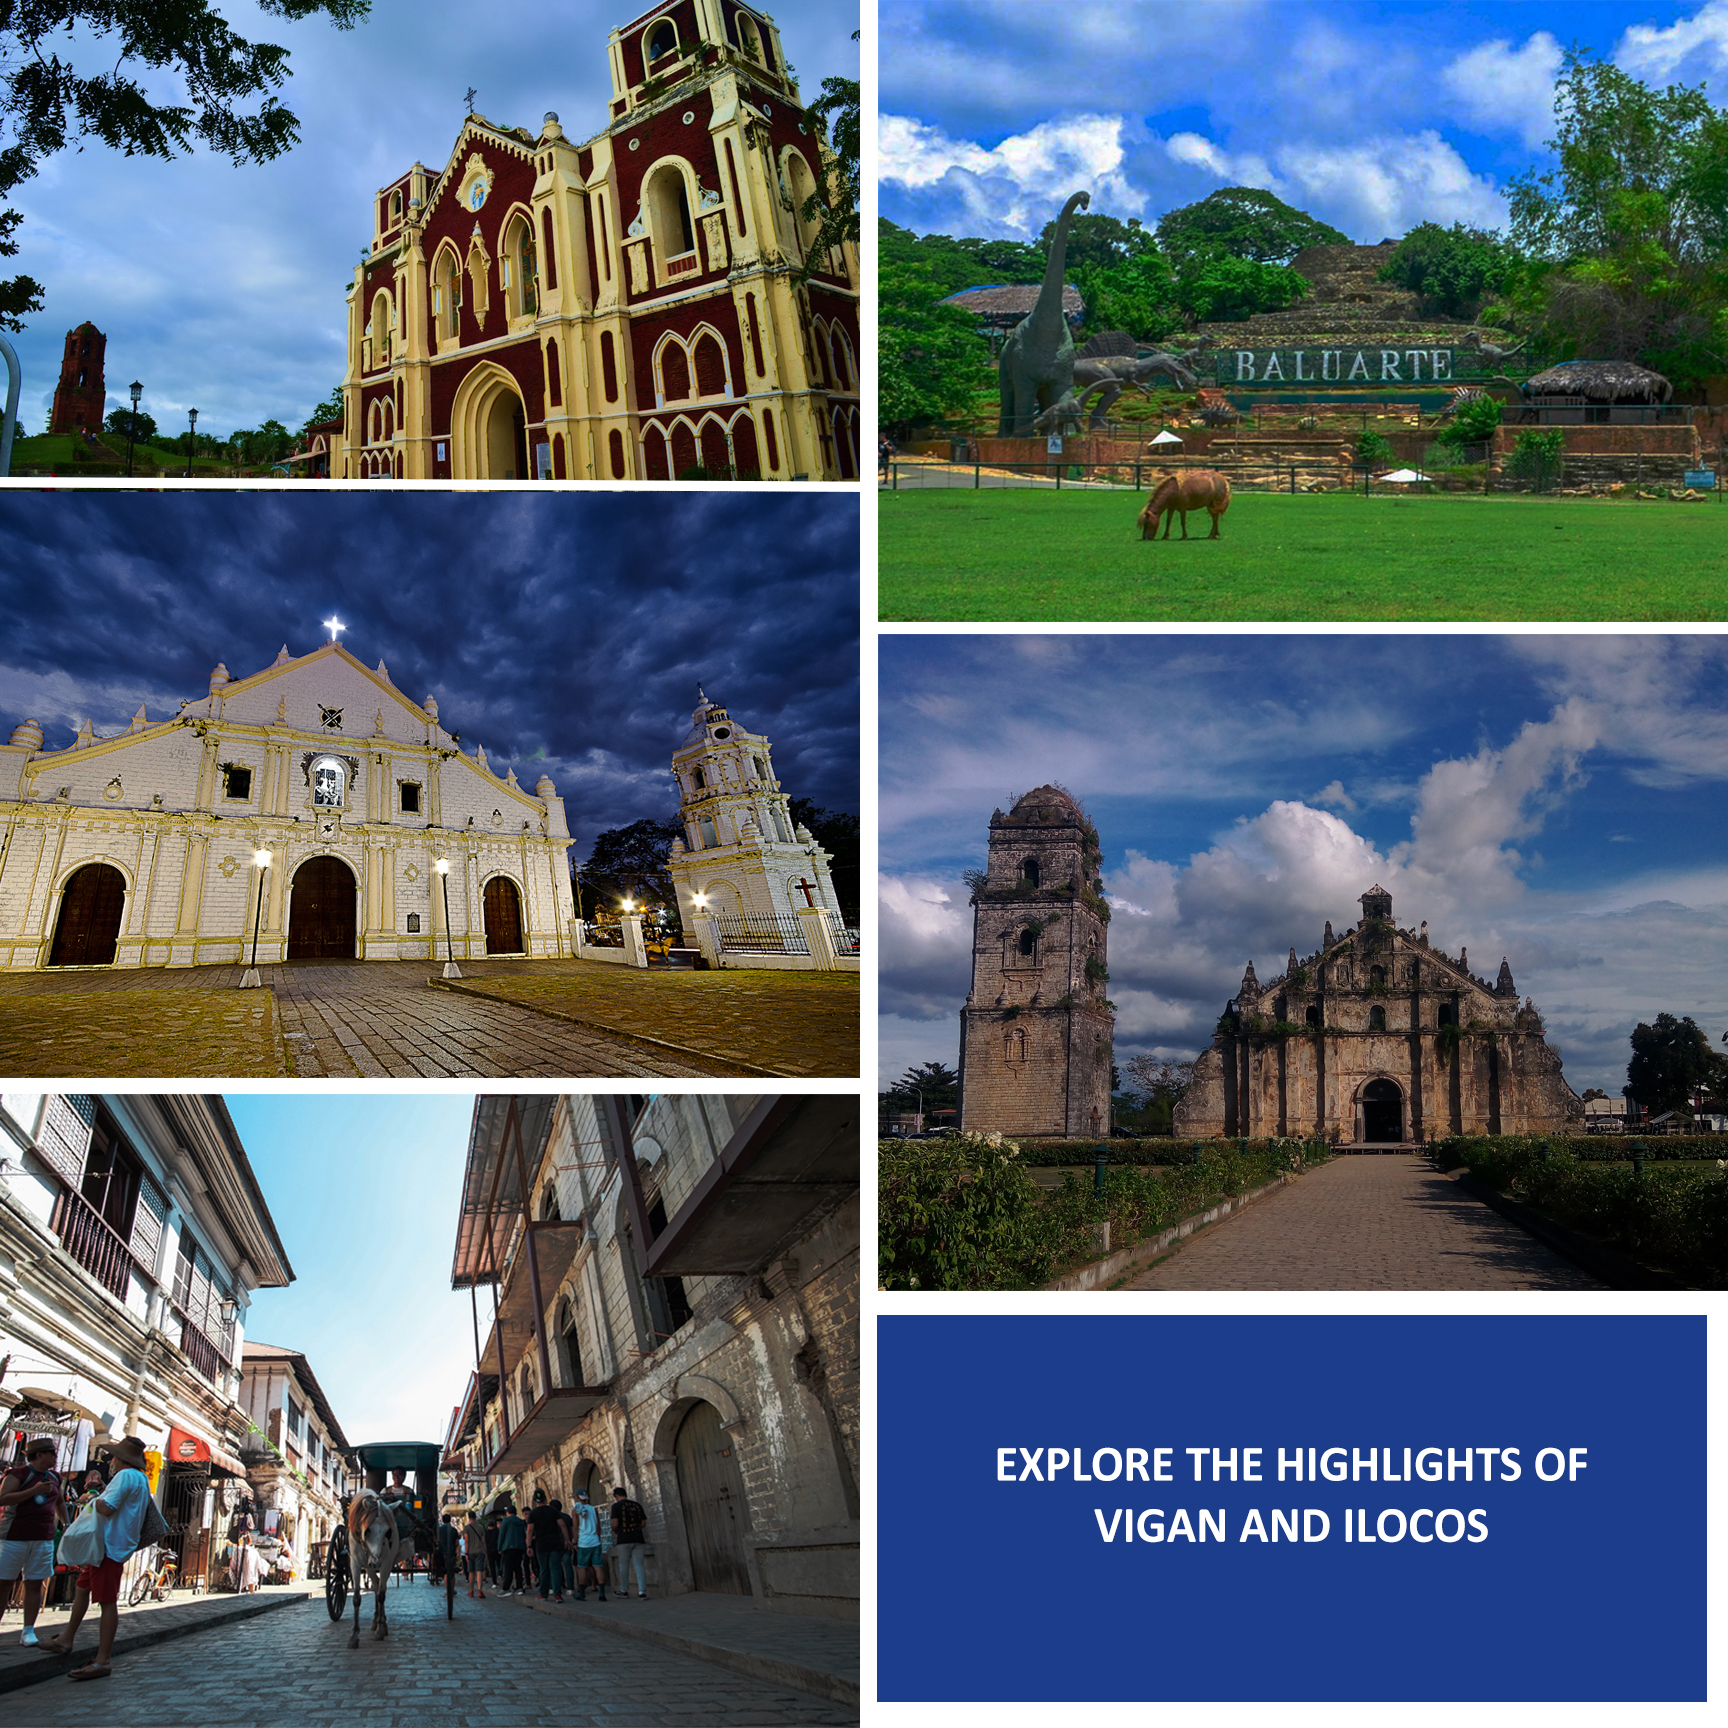 Vigan and Ilocos Norte Day Tour | With Transfers from Laoag - day 1